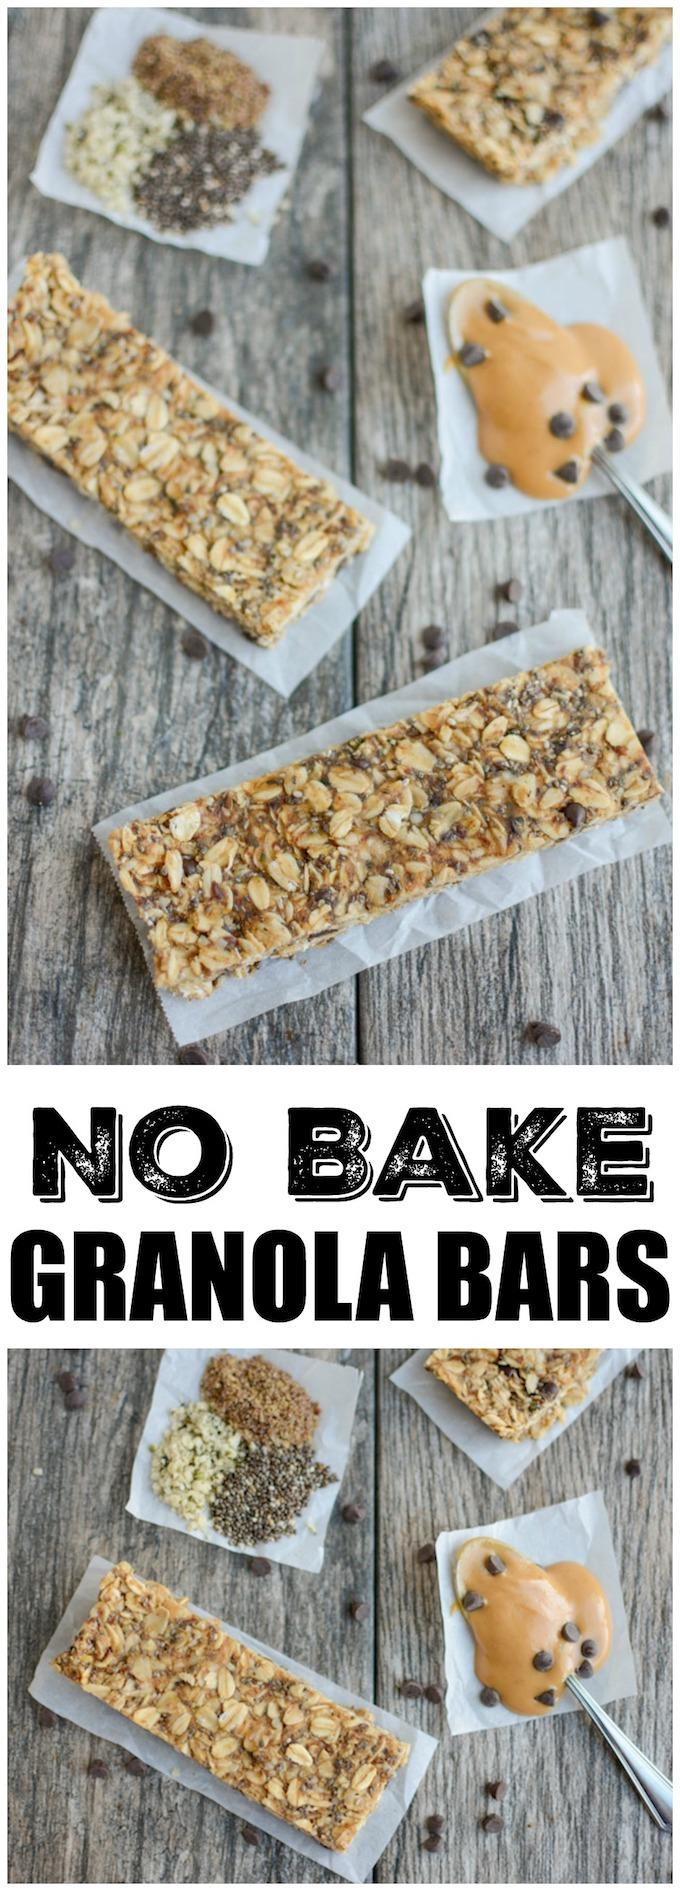 These No-Bake Granola Bars are lightly sweetened with honey and packed with chia, flax and hemp seeds. Full of fiber, protein, and healthy fats, they make a healthy, kid-friendly afternoonsnack!